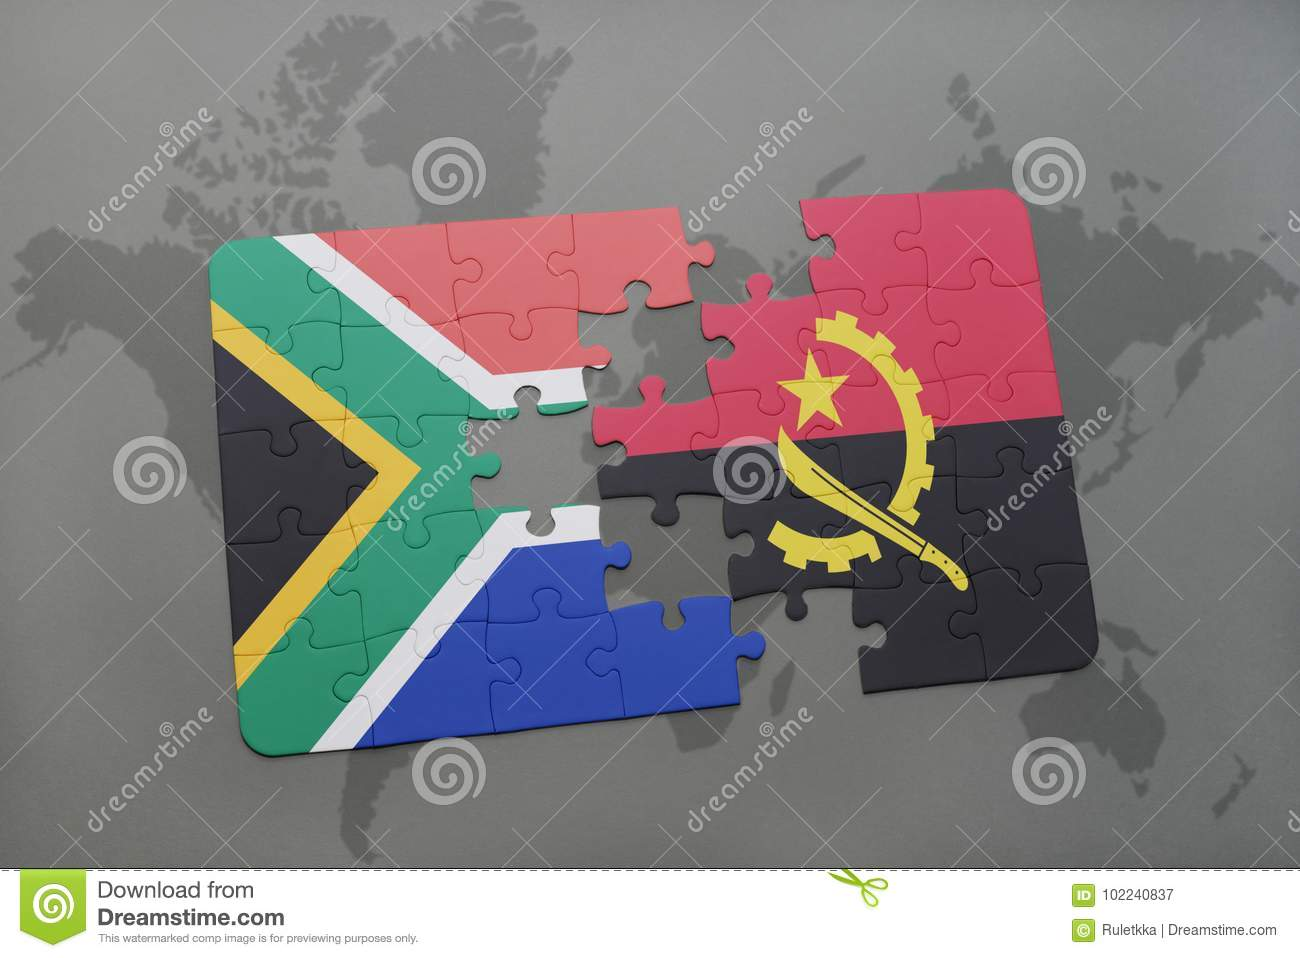 Puzzle with the national flag of south africa and angola on a world download puzzle with the national flag of south africa and angola on a world map gumiabroncs Choice Image